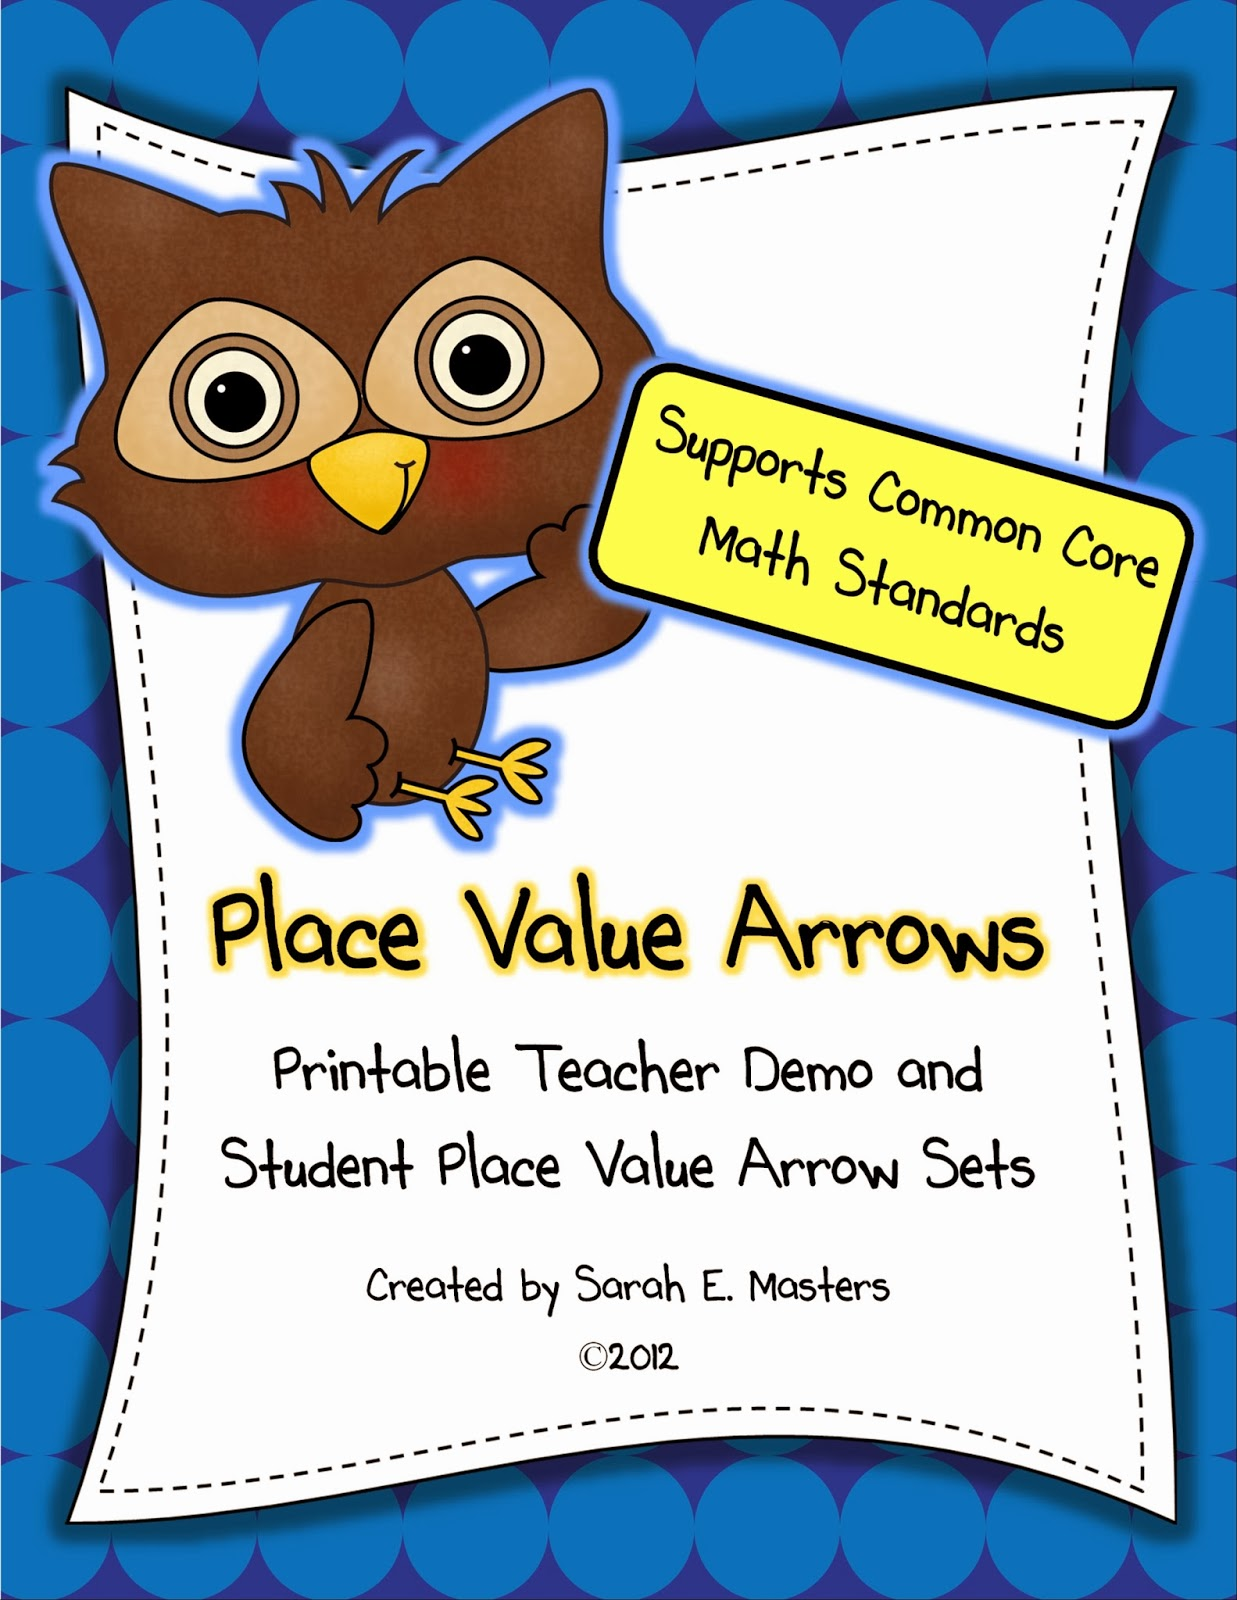 http://www.teacherspayteachers.com/Product/Place-Value-Arrows-to-Help-Support-the-Common-Core-FREE-293633